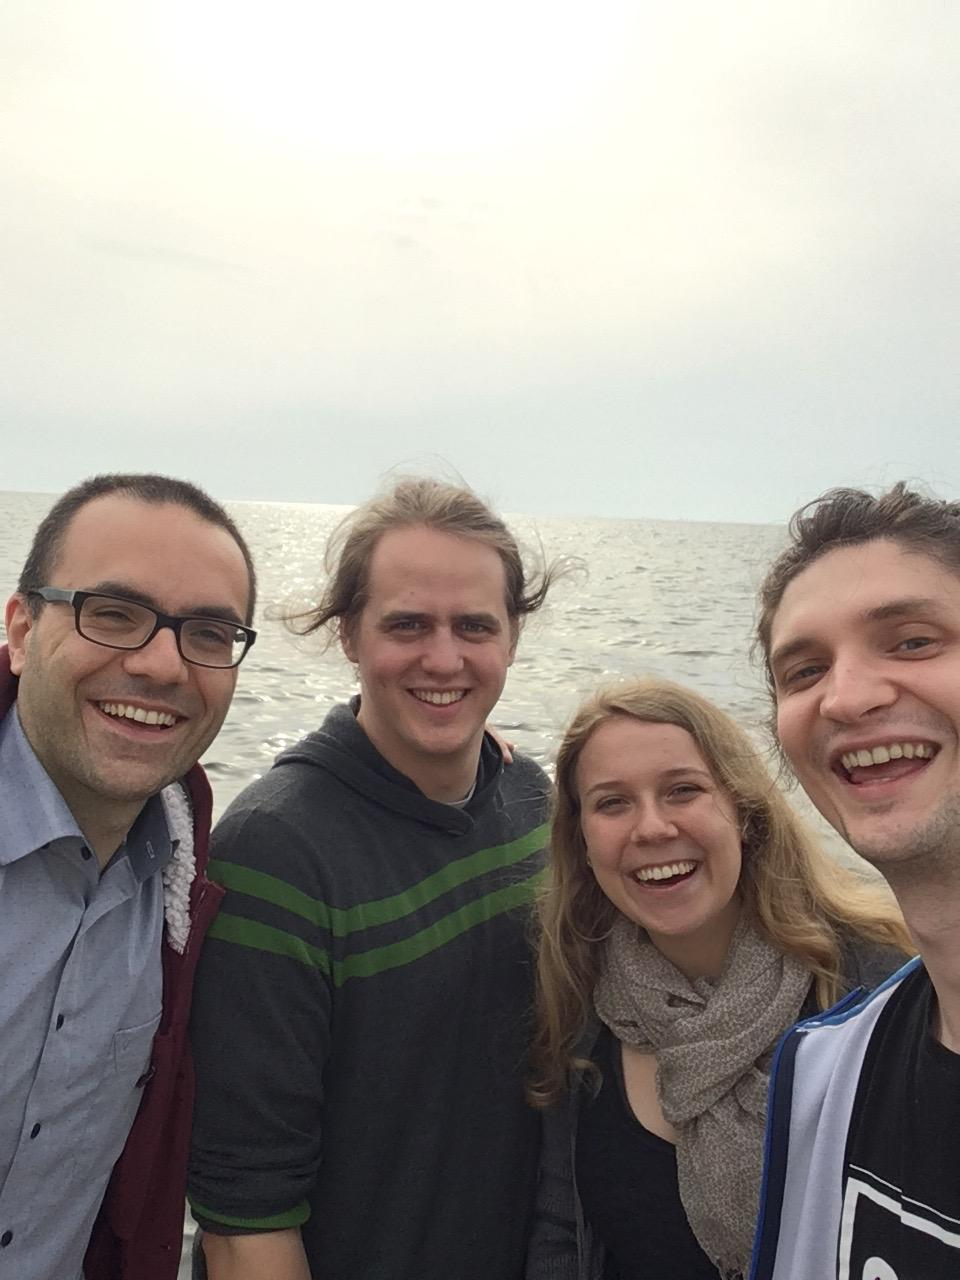 The EtherTrust-Team (Matteo, Niklas, Clara, Ilya) at the sea inThessaloniki